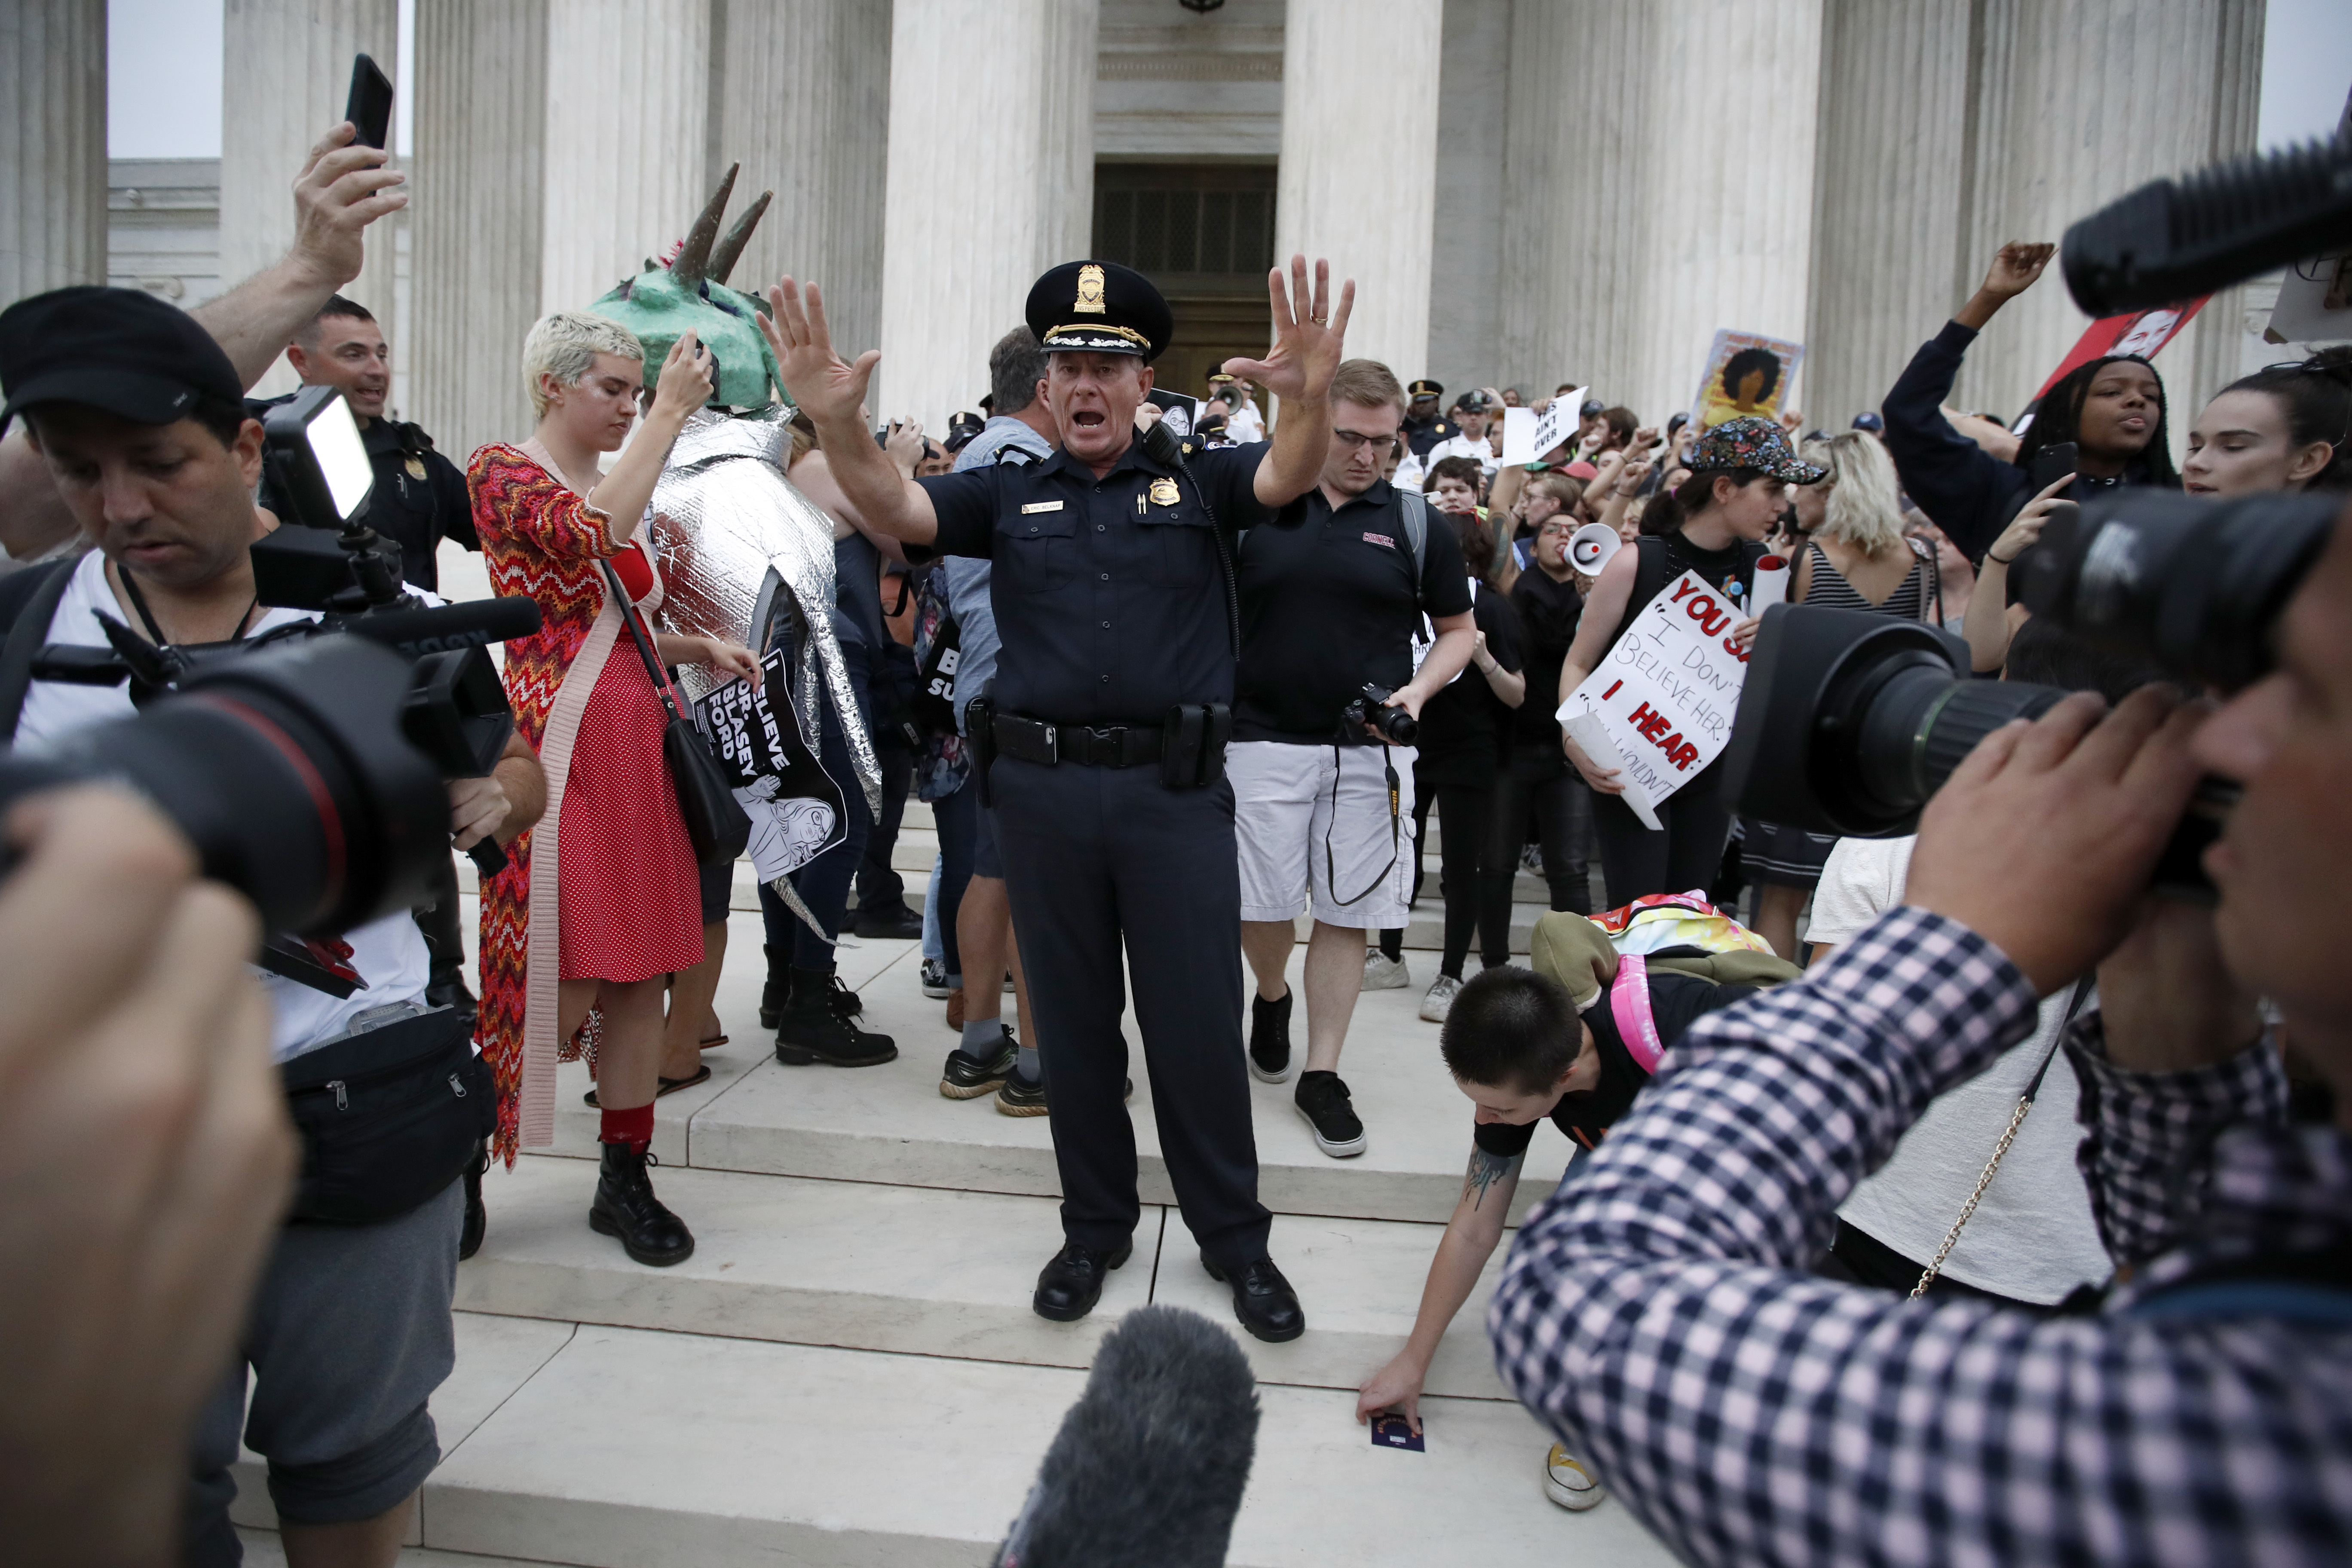 Police move activists as they protest on the steps of the Supreme Court after the confirmation vote of Supreme Court nominee Brett Kavanaugh, on Capitol Hill, Saturday, Oct. 6, 2018 in Washington.